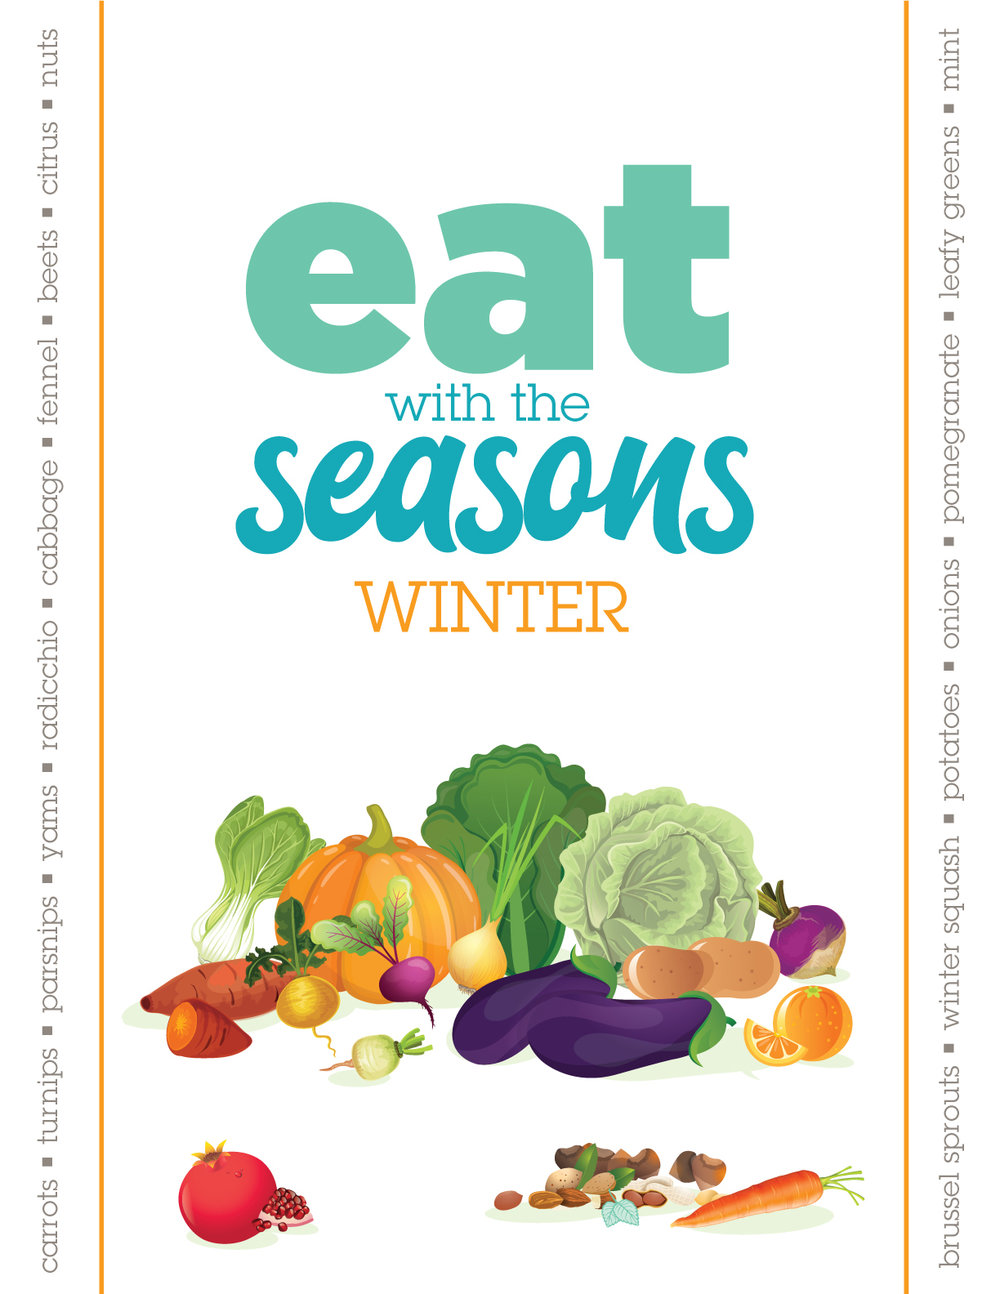 Eat-with-the-Seasons-Winter.jpg